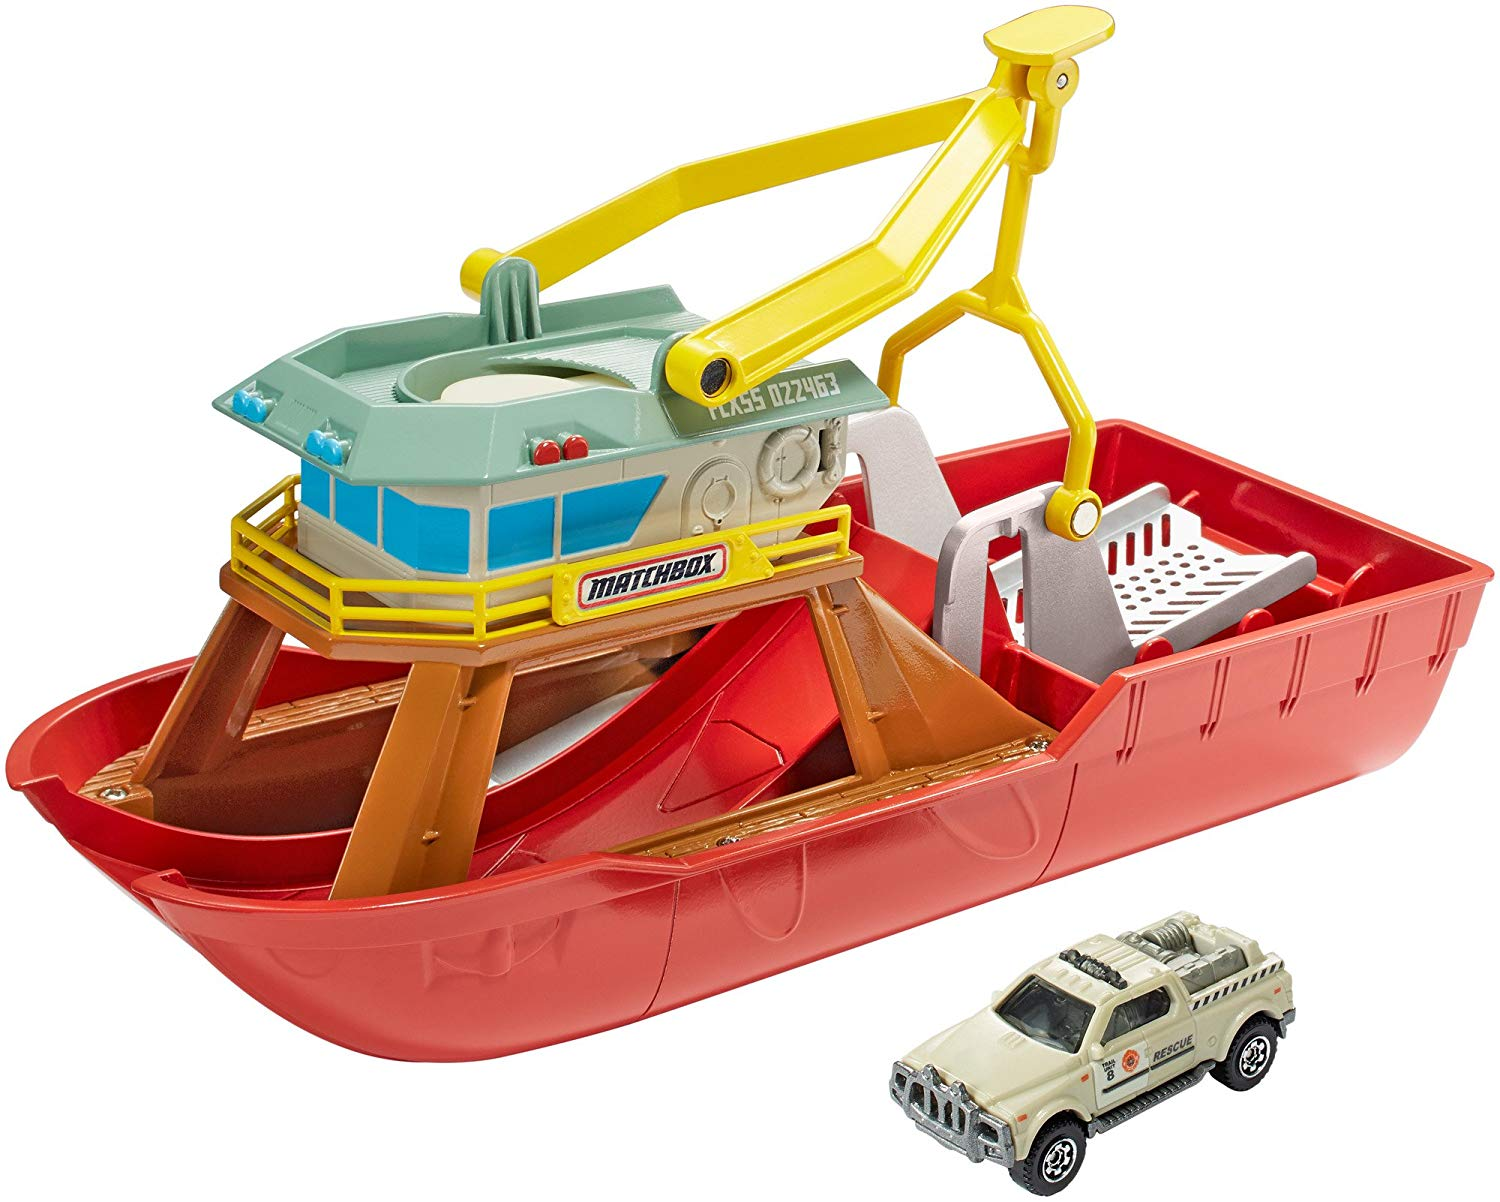 Color Changer Ship Playset, Amazing play set with real world inspired By Matchbox by